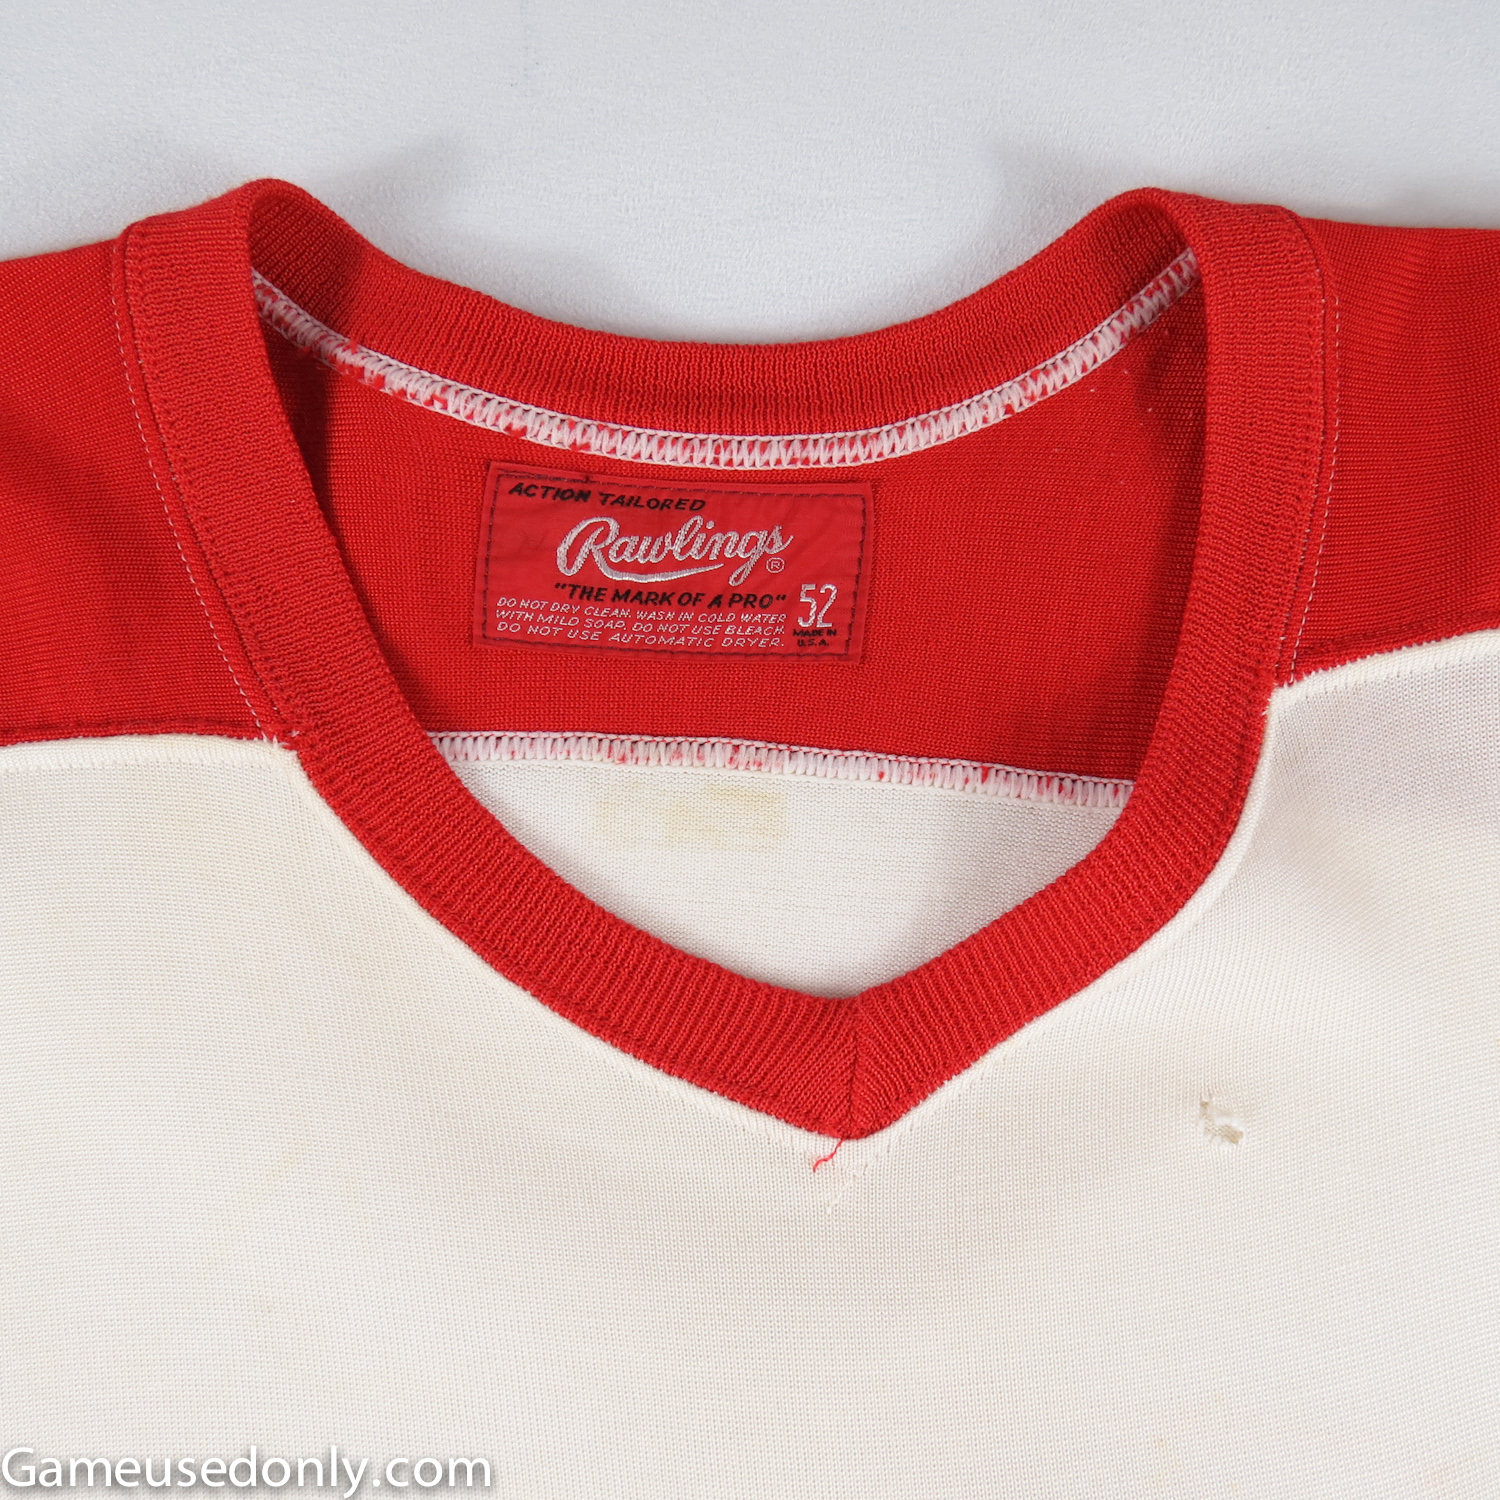 NHL-Atlanta-Flames-Rawlings-Durene-Worn-Jersey-1973